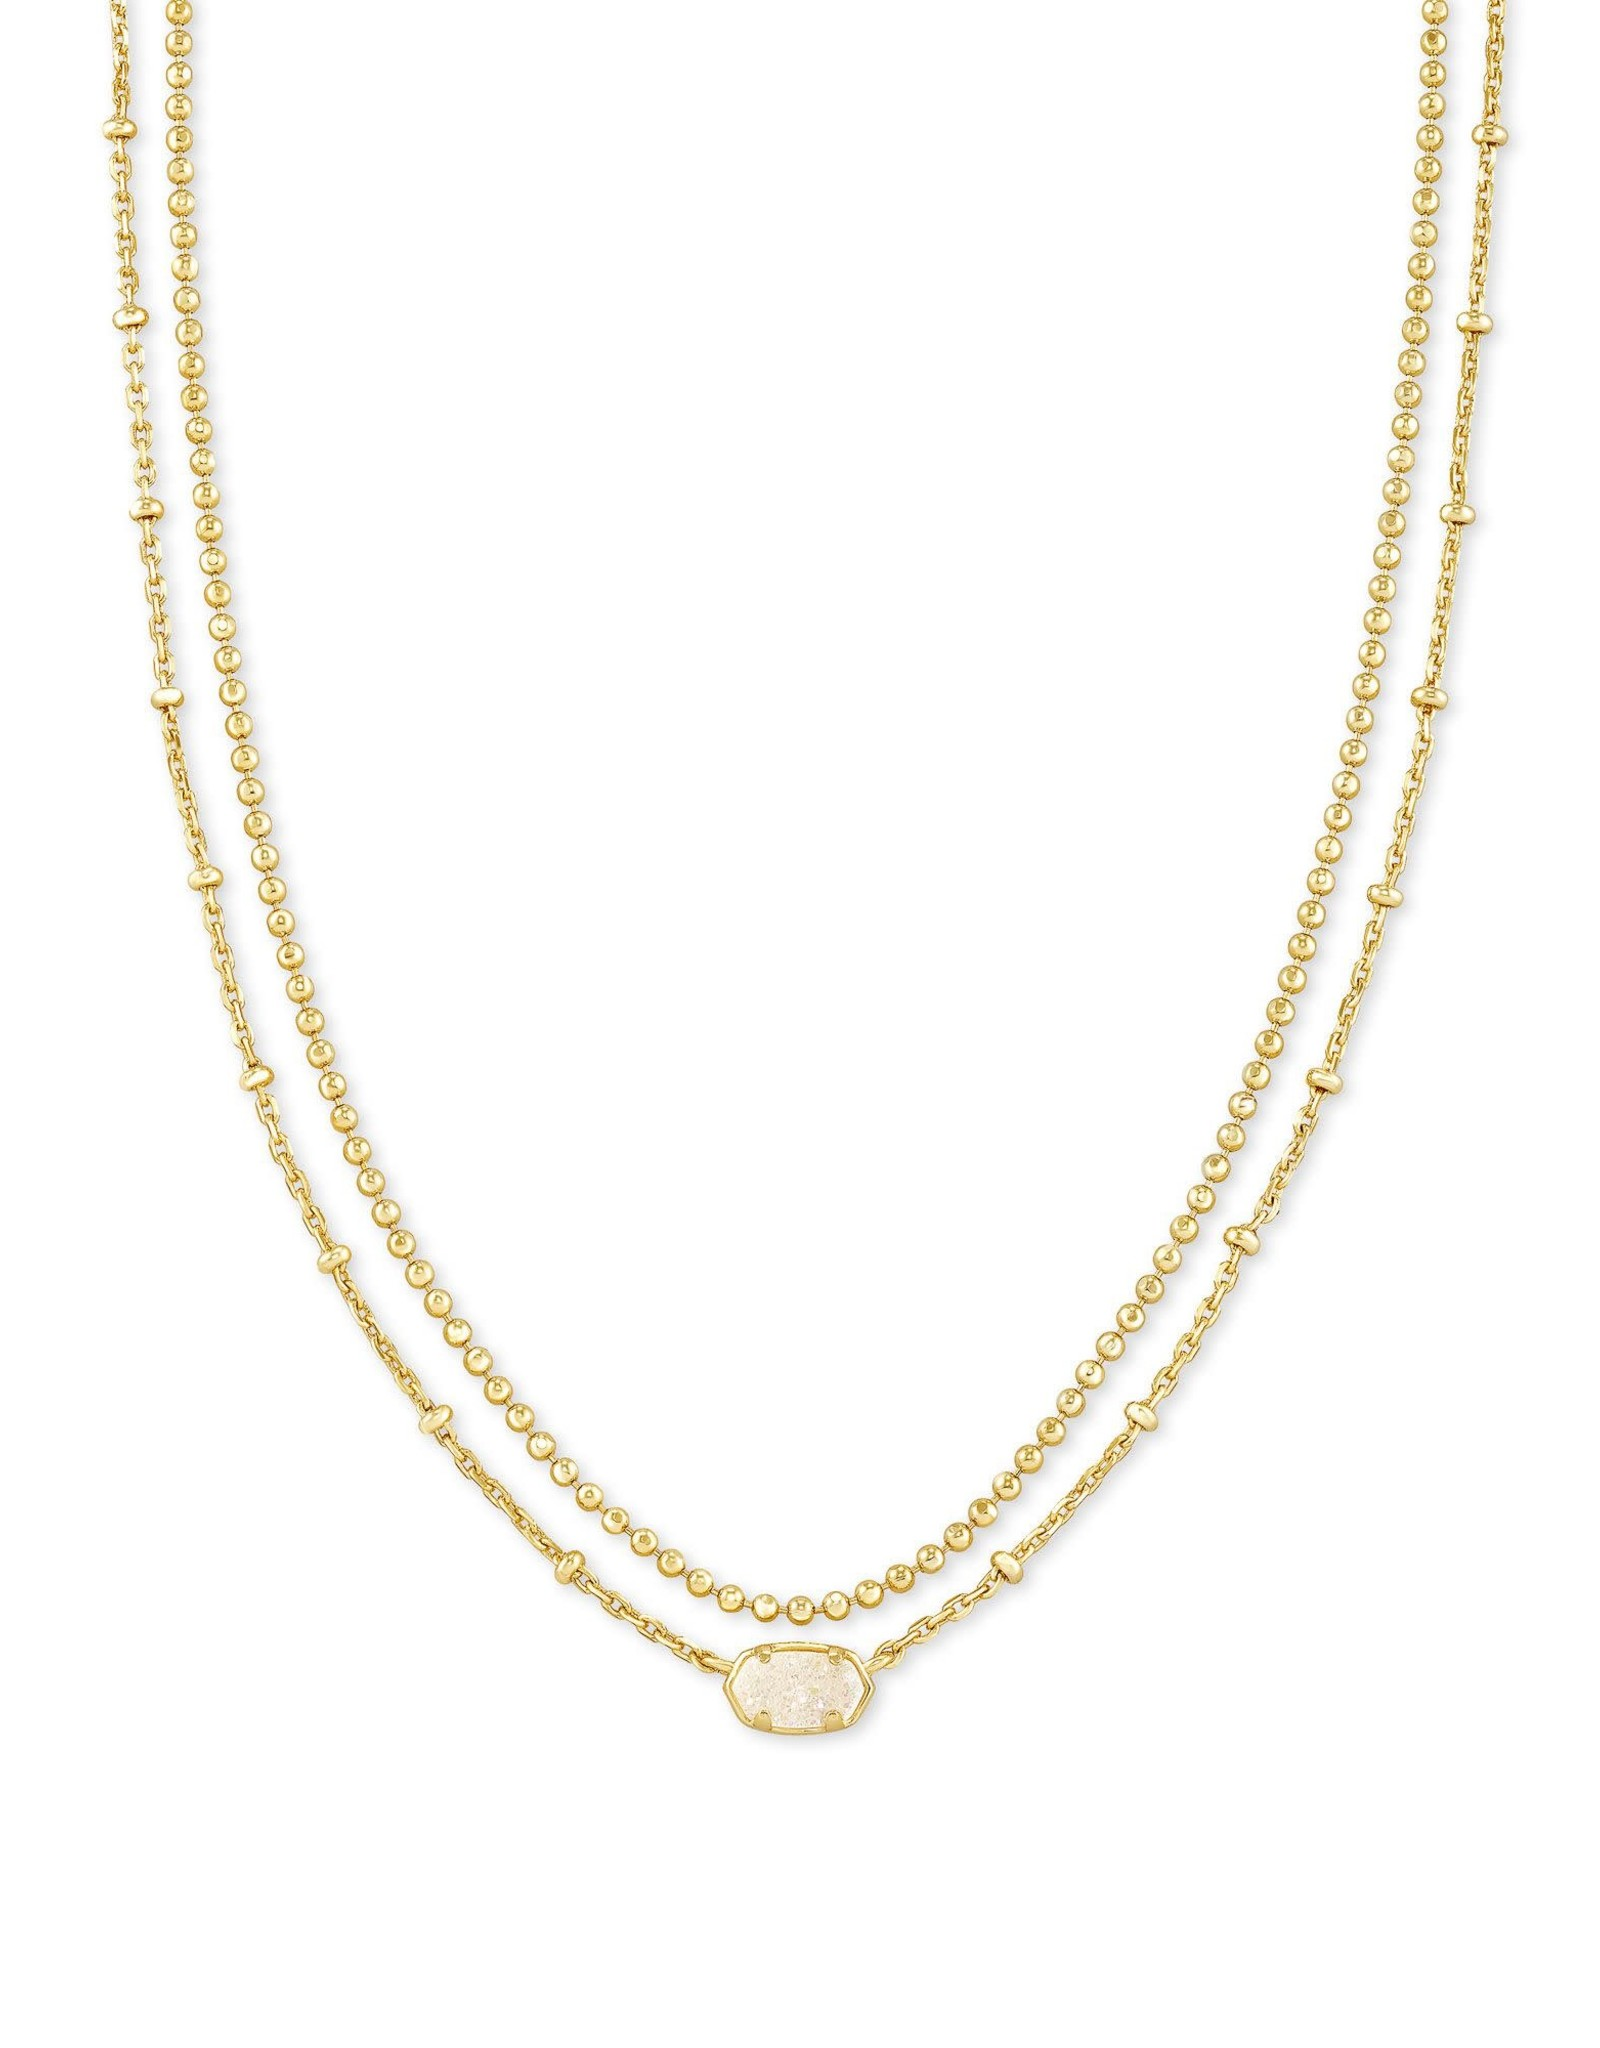 Kendra Scott Emilie Multi Strand Necklace - Iridescent Drusy/Gold